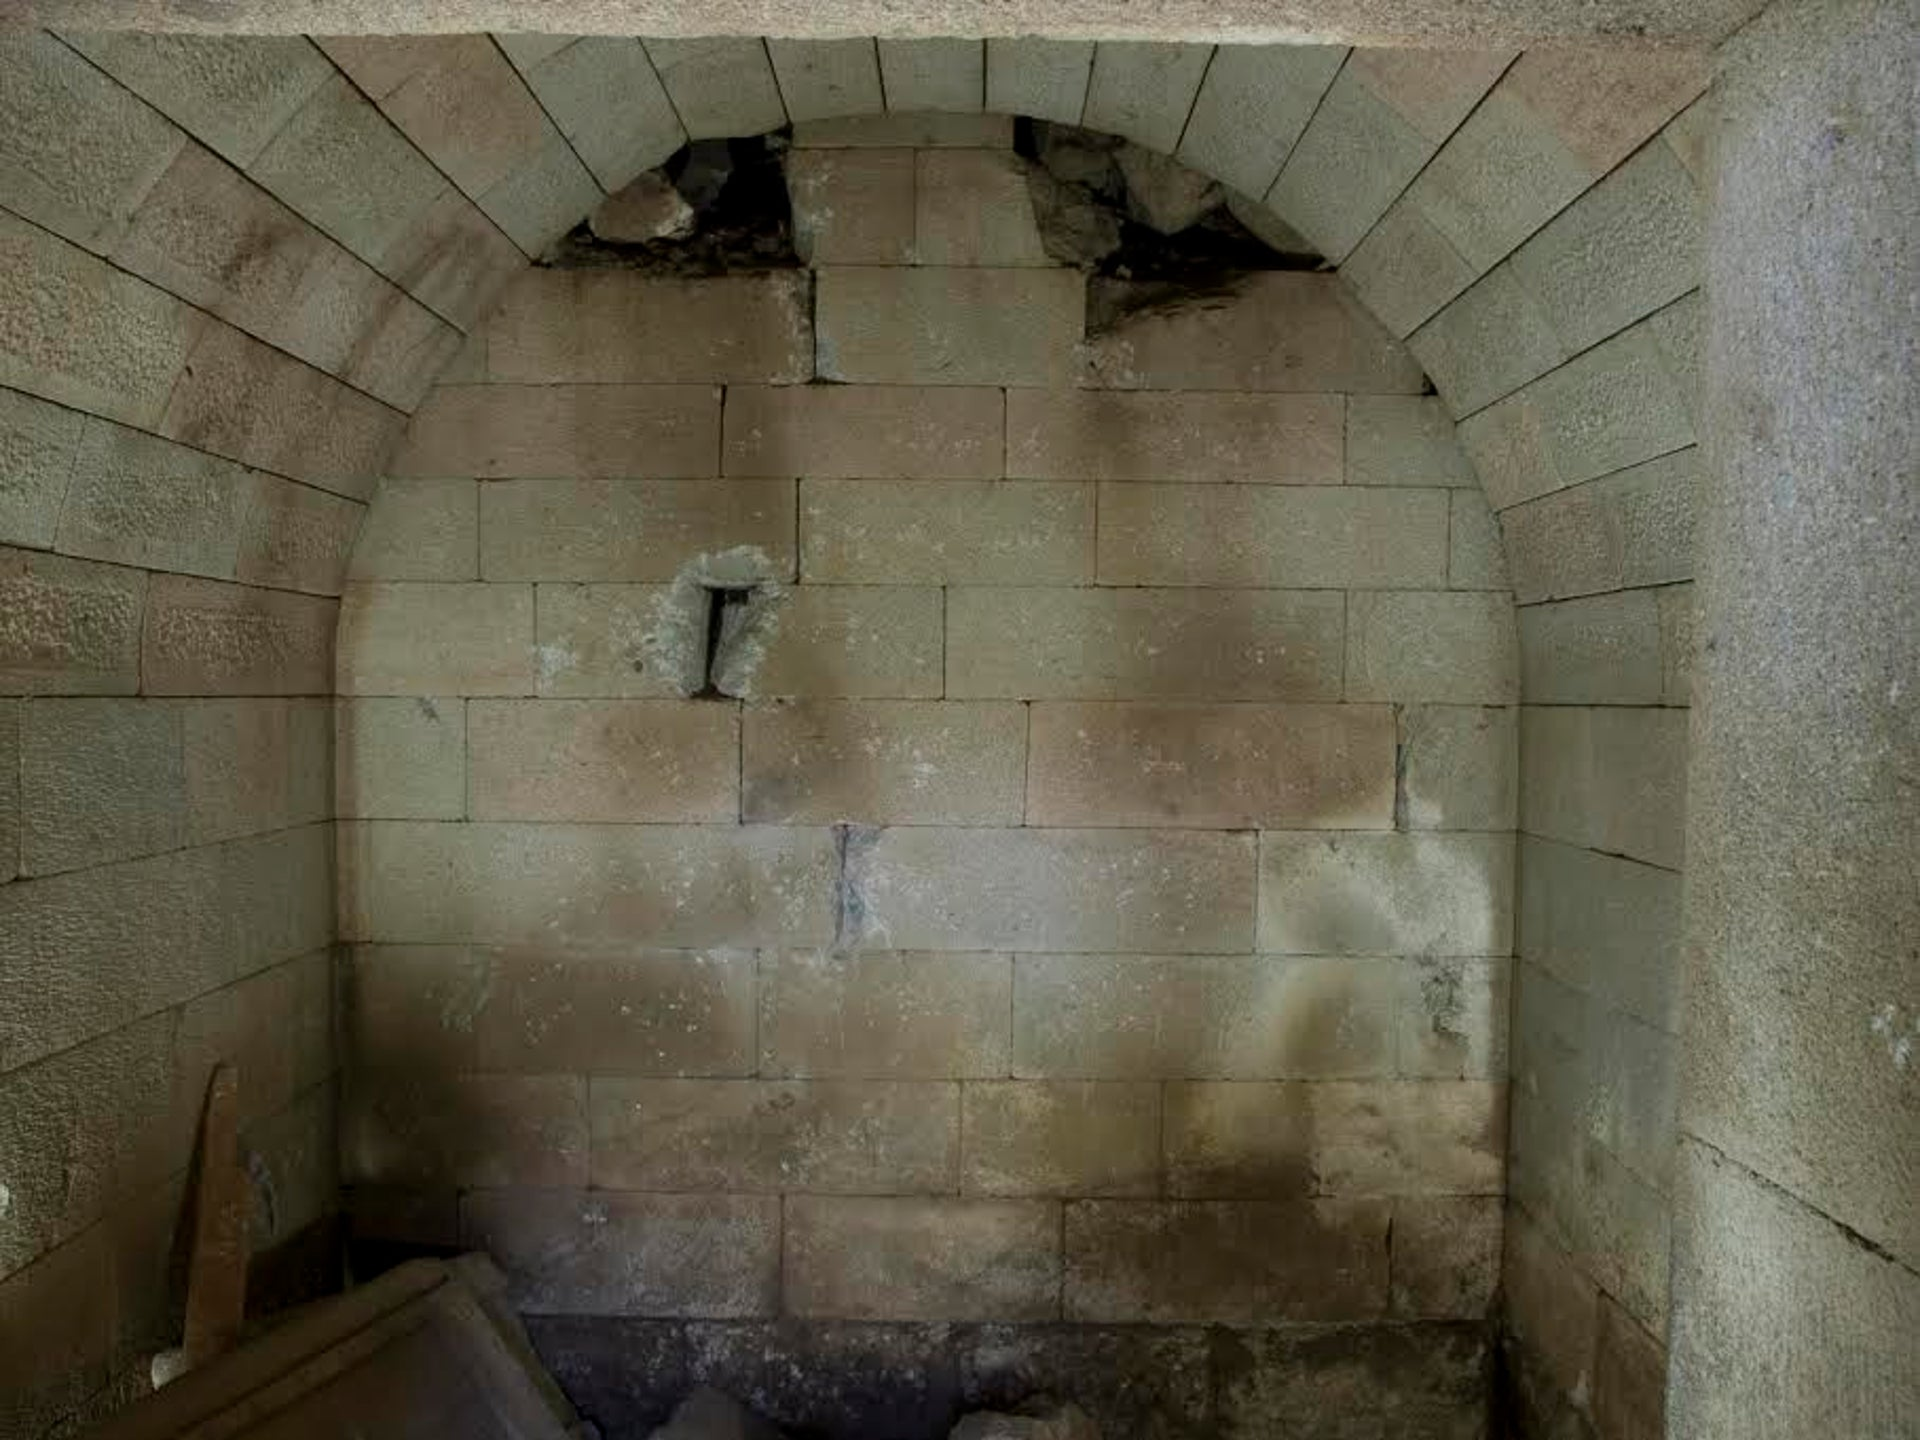 Vaulted tomb that had been equipped with a complex locking mechanism, Pergamon excavation.